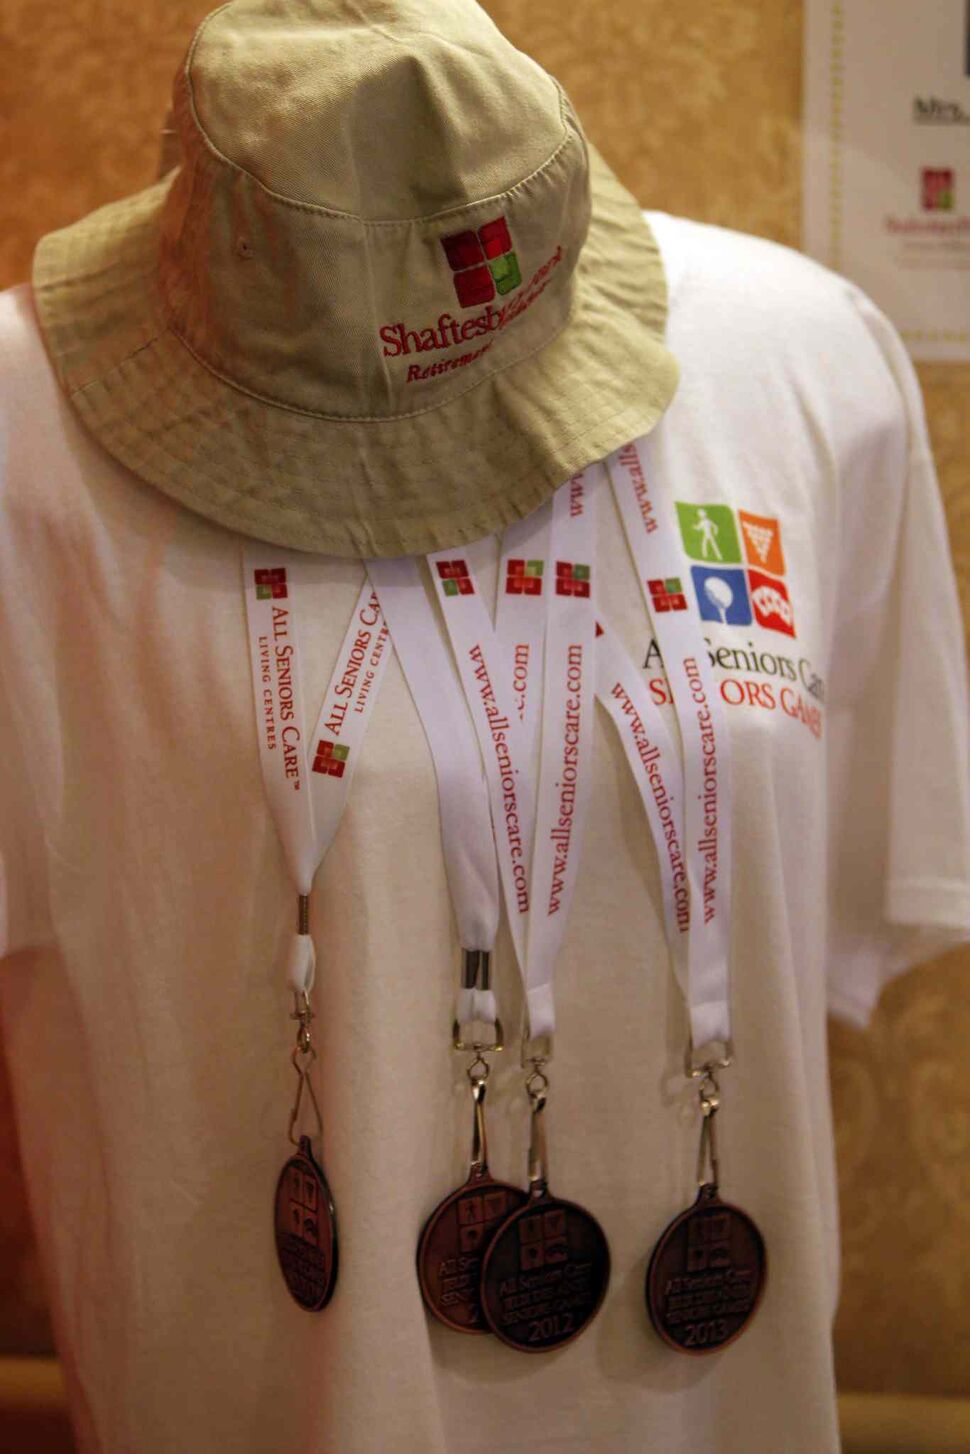 Medals a T-shirt and hat are on display at the All Senior Care Senior Games 2014 at Shaftesbury Park Retirement Residence. (Boris Minkevich / Winnipeg Free Press)